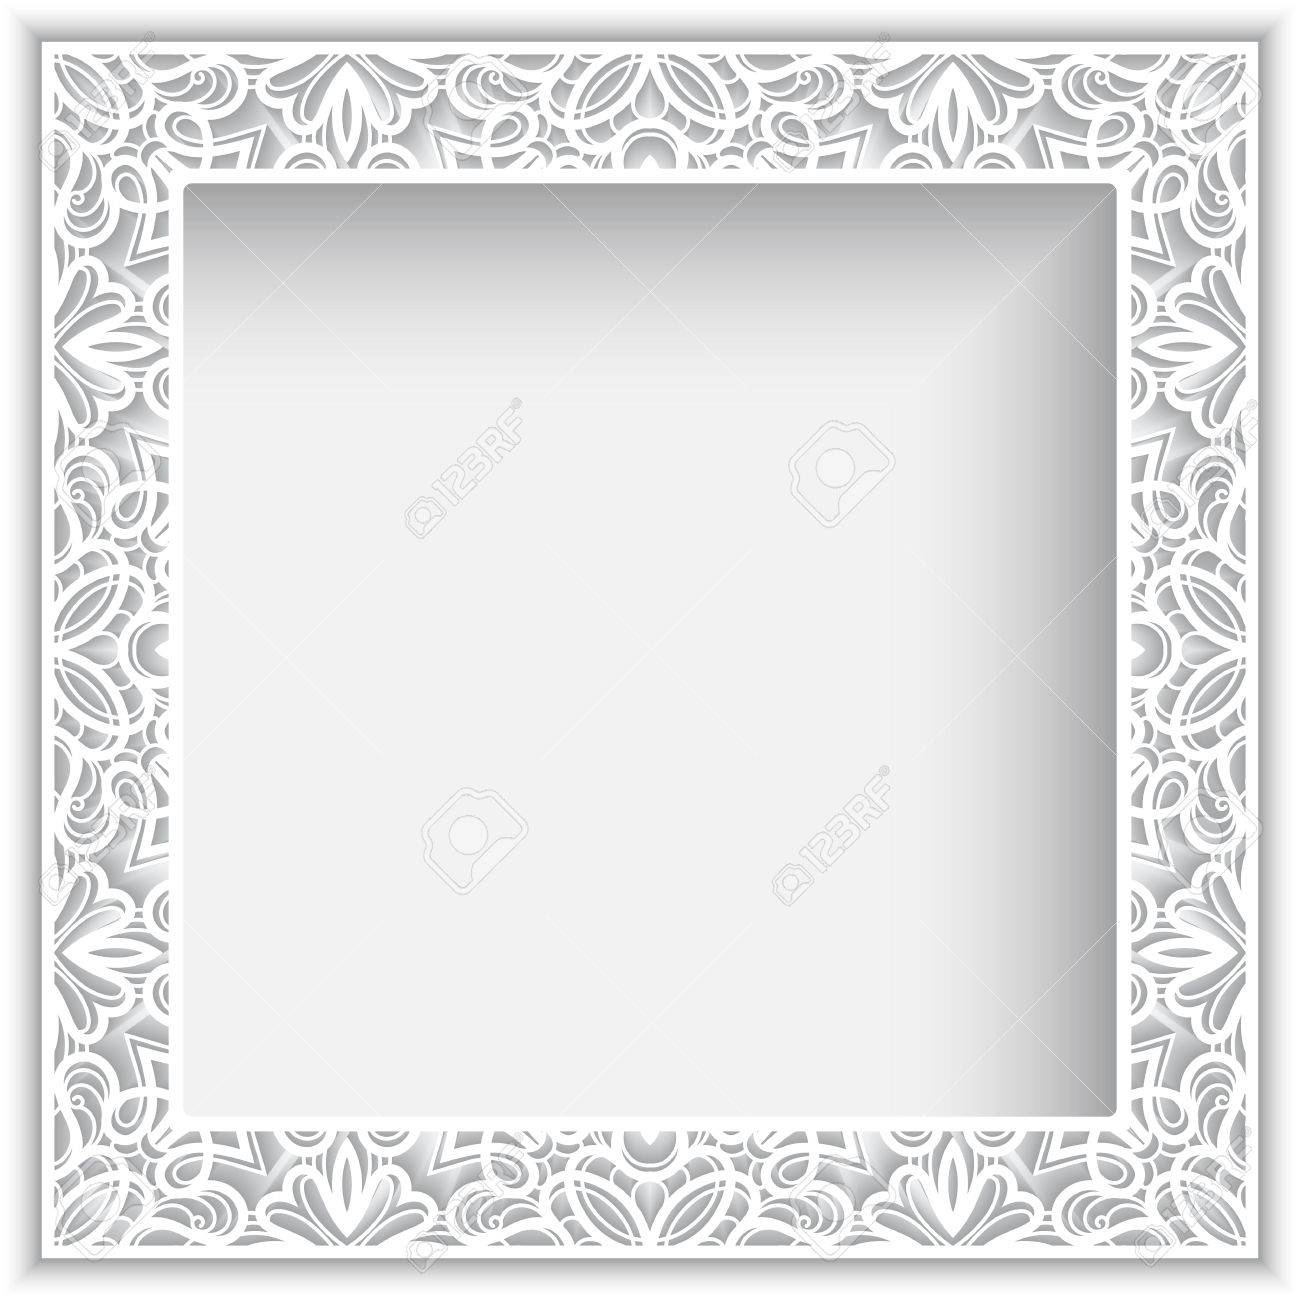 Square White Frame With Cutout Paper Lace Border Ornament Royalty ...